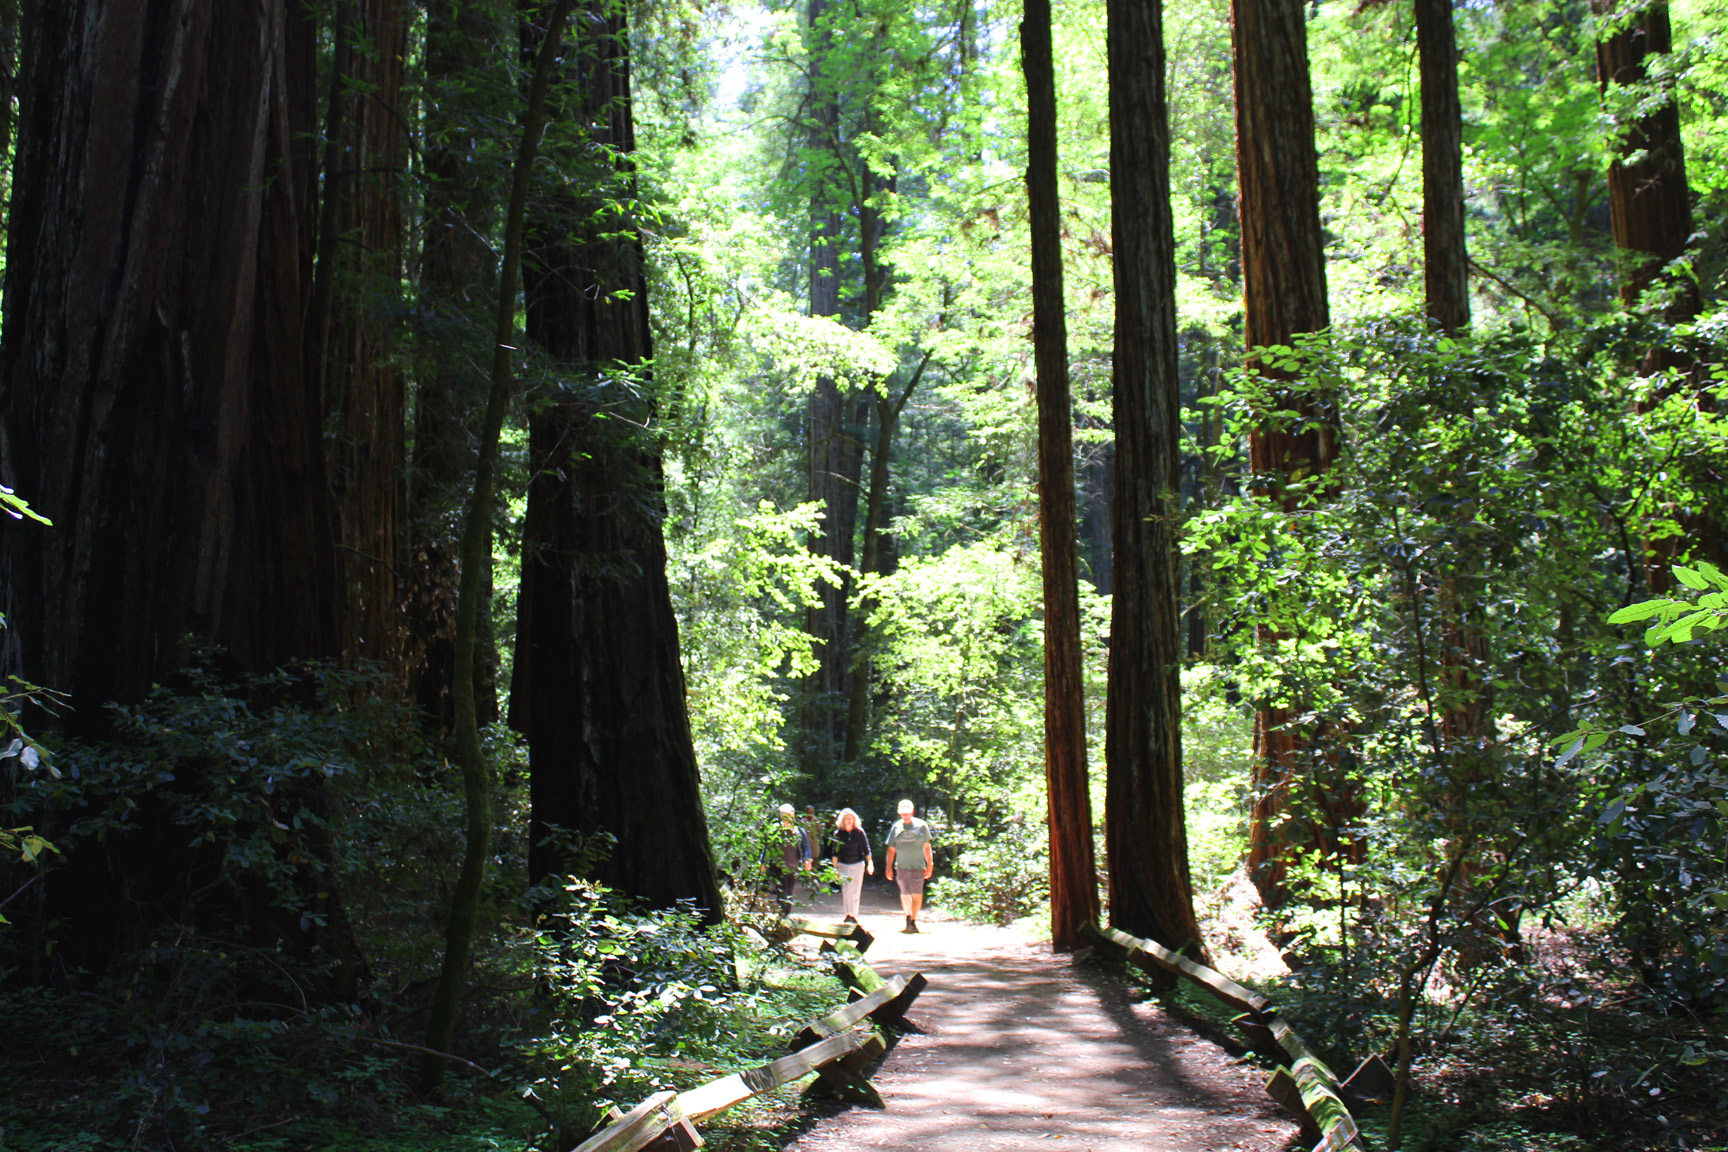 Armstrong Redwoods, Santa Rosa California. Photo: Mary Charlebois